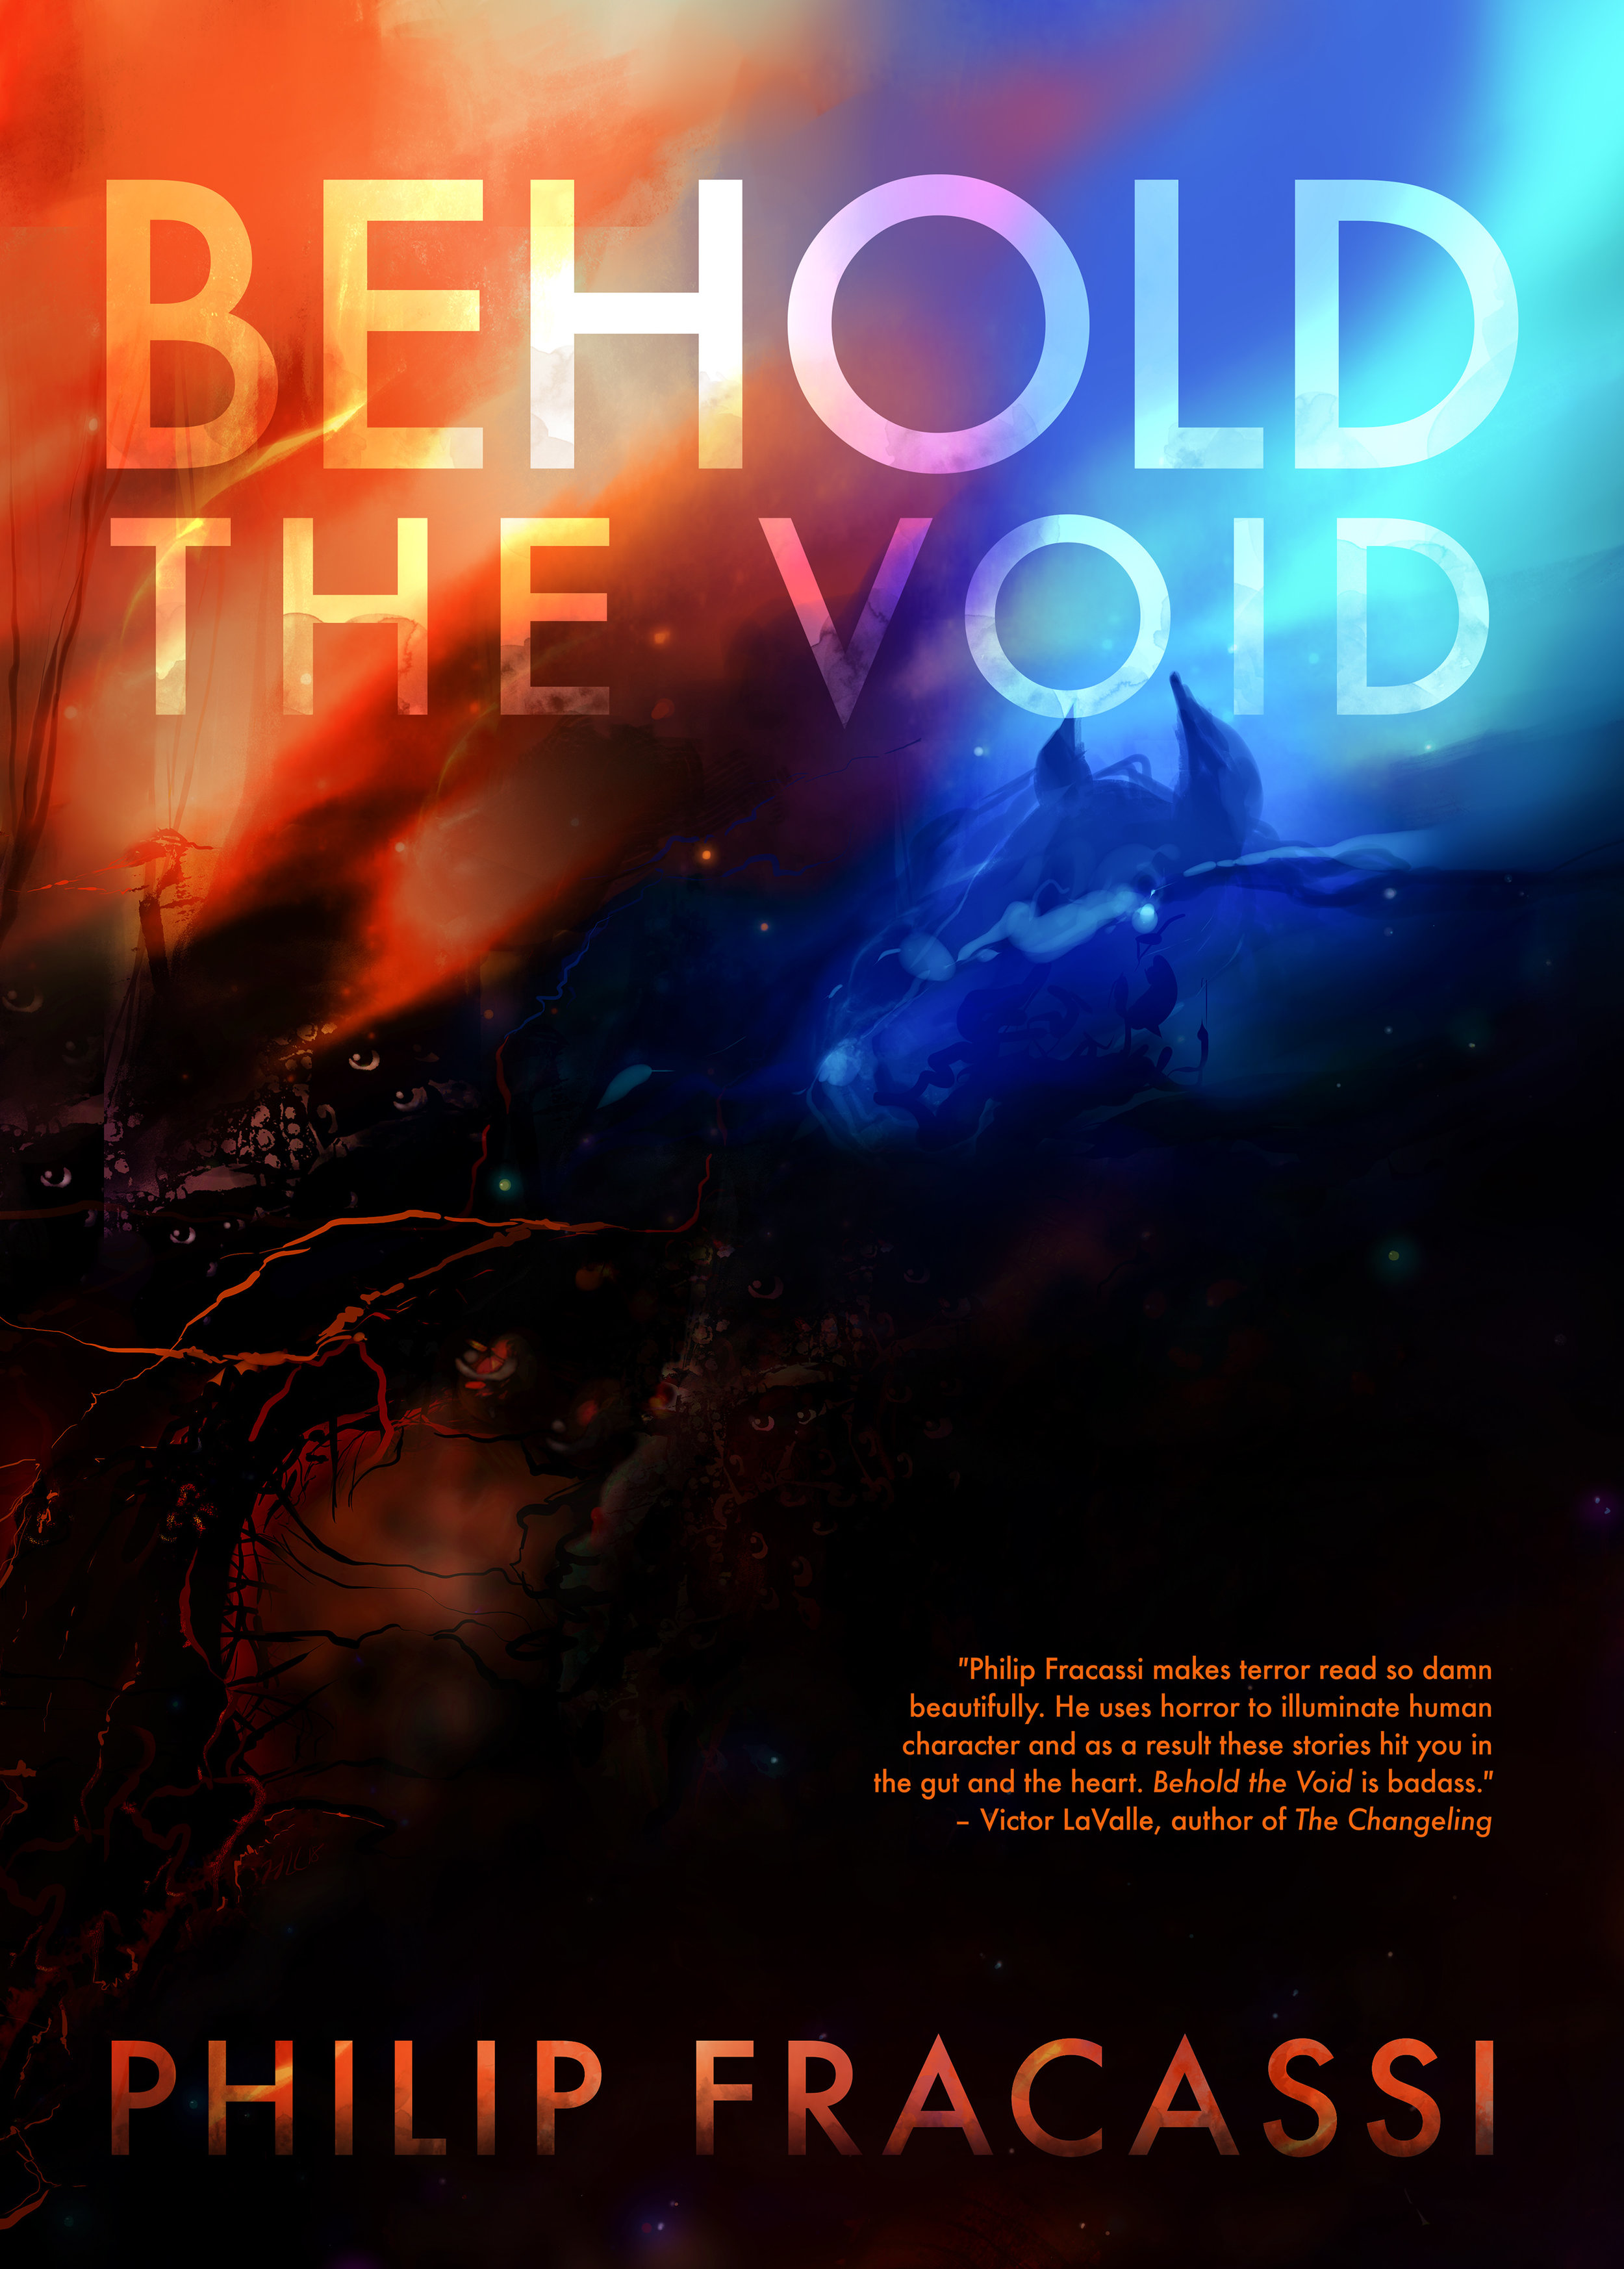 Behold the Void Cover Image.jpg